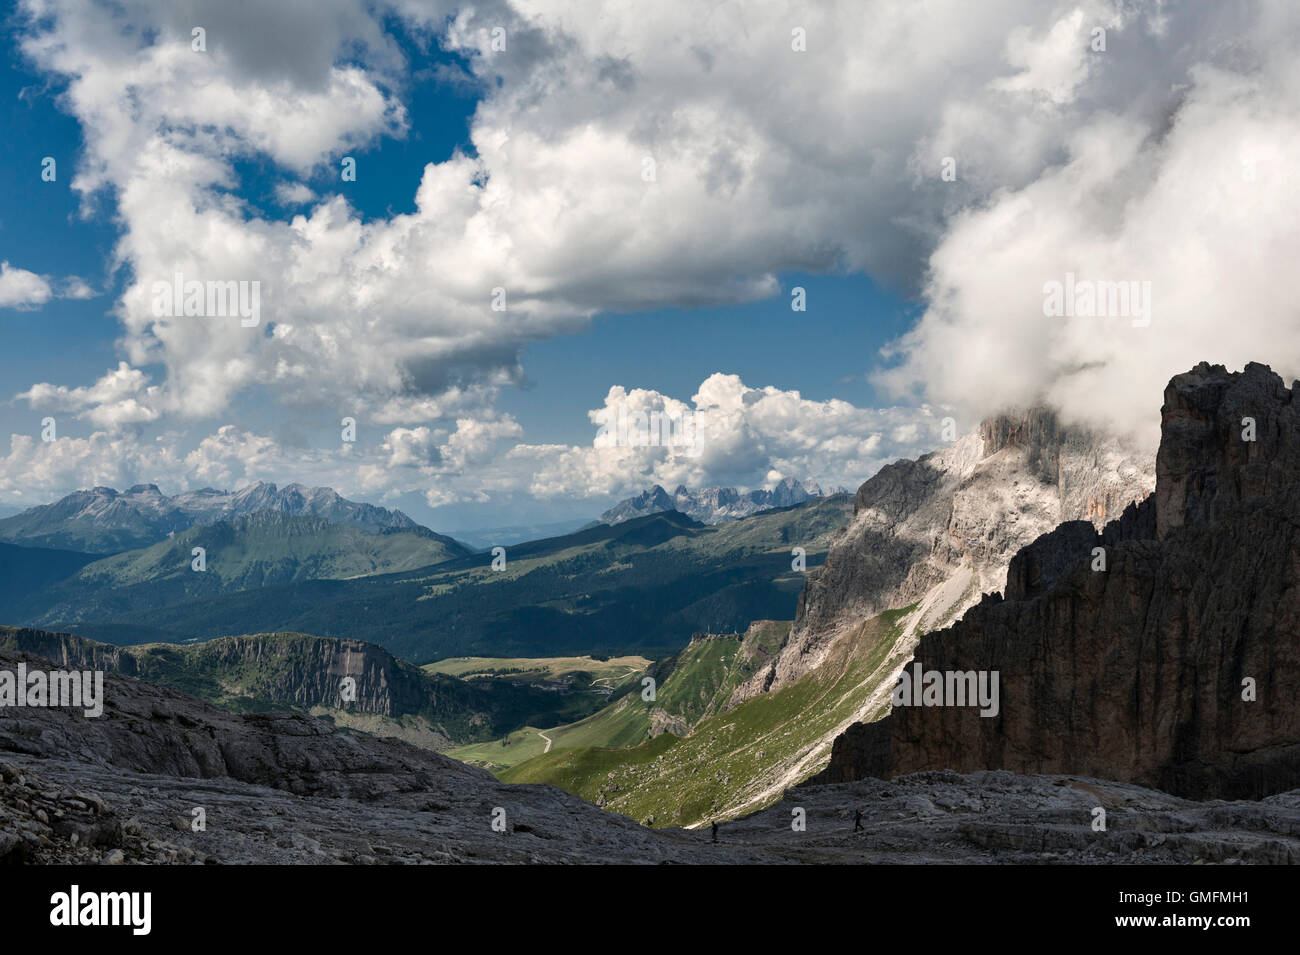 The Dolomites, Trentino, Italy. Summer view west from the plateau at La Rosetta over the hills around San Martino Stock Photo